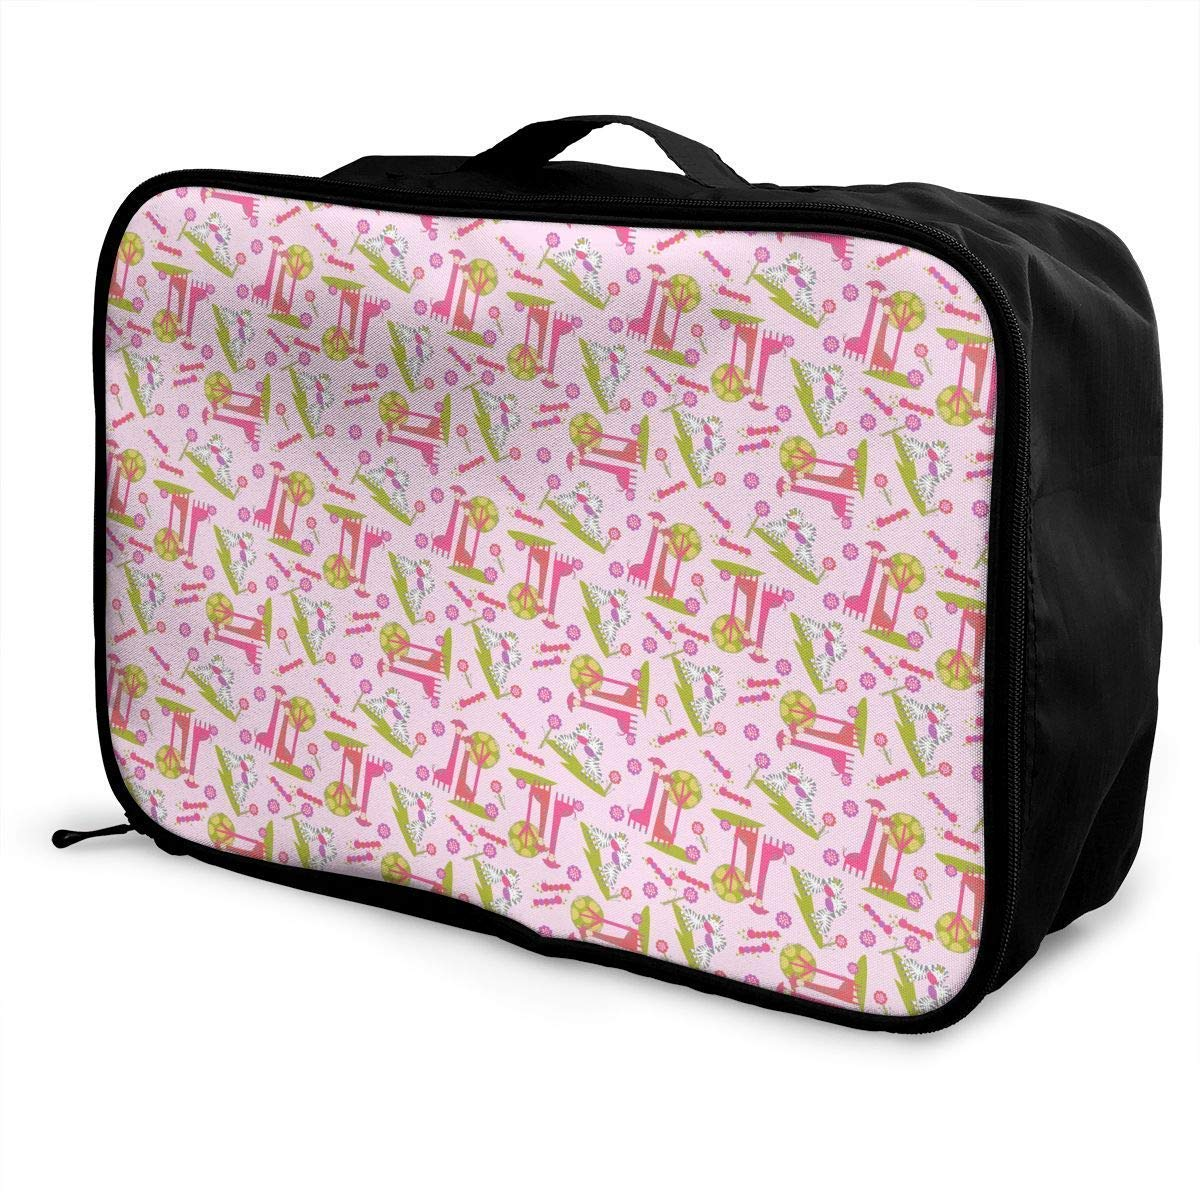 Portable Luggage Duffel Bag Cute Giraffe Travel Bags Carry-on in Trolley Handle JTRVW Luggage Bags for Travel